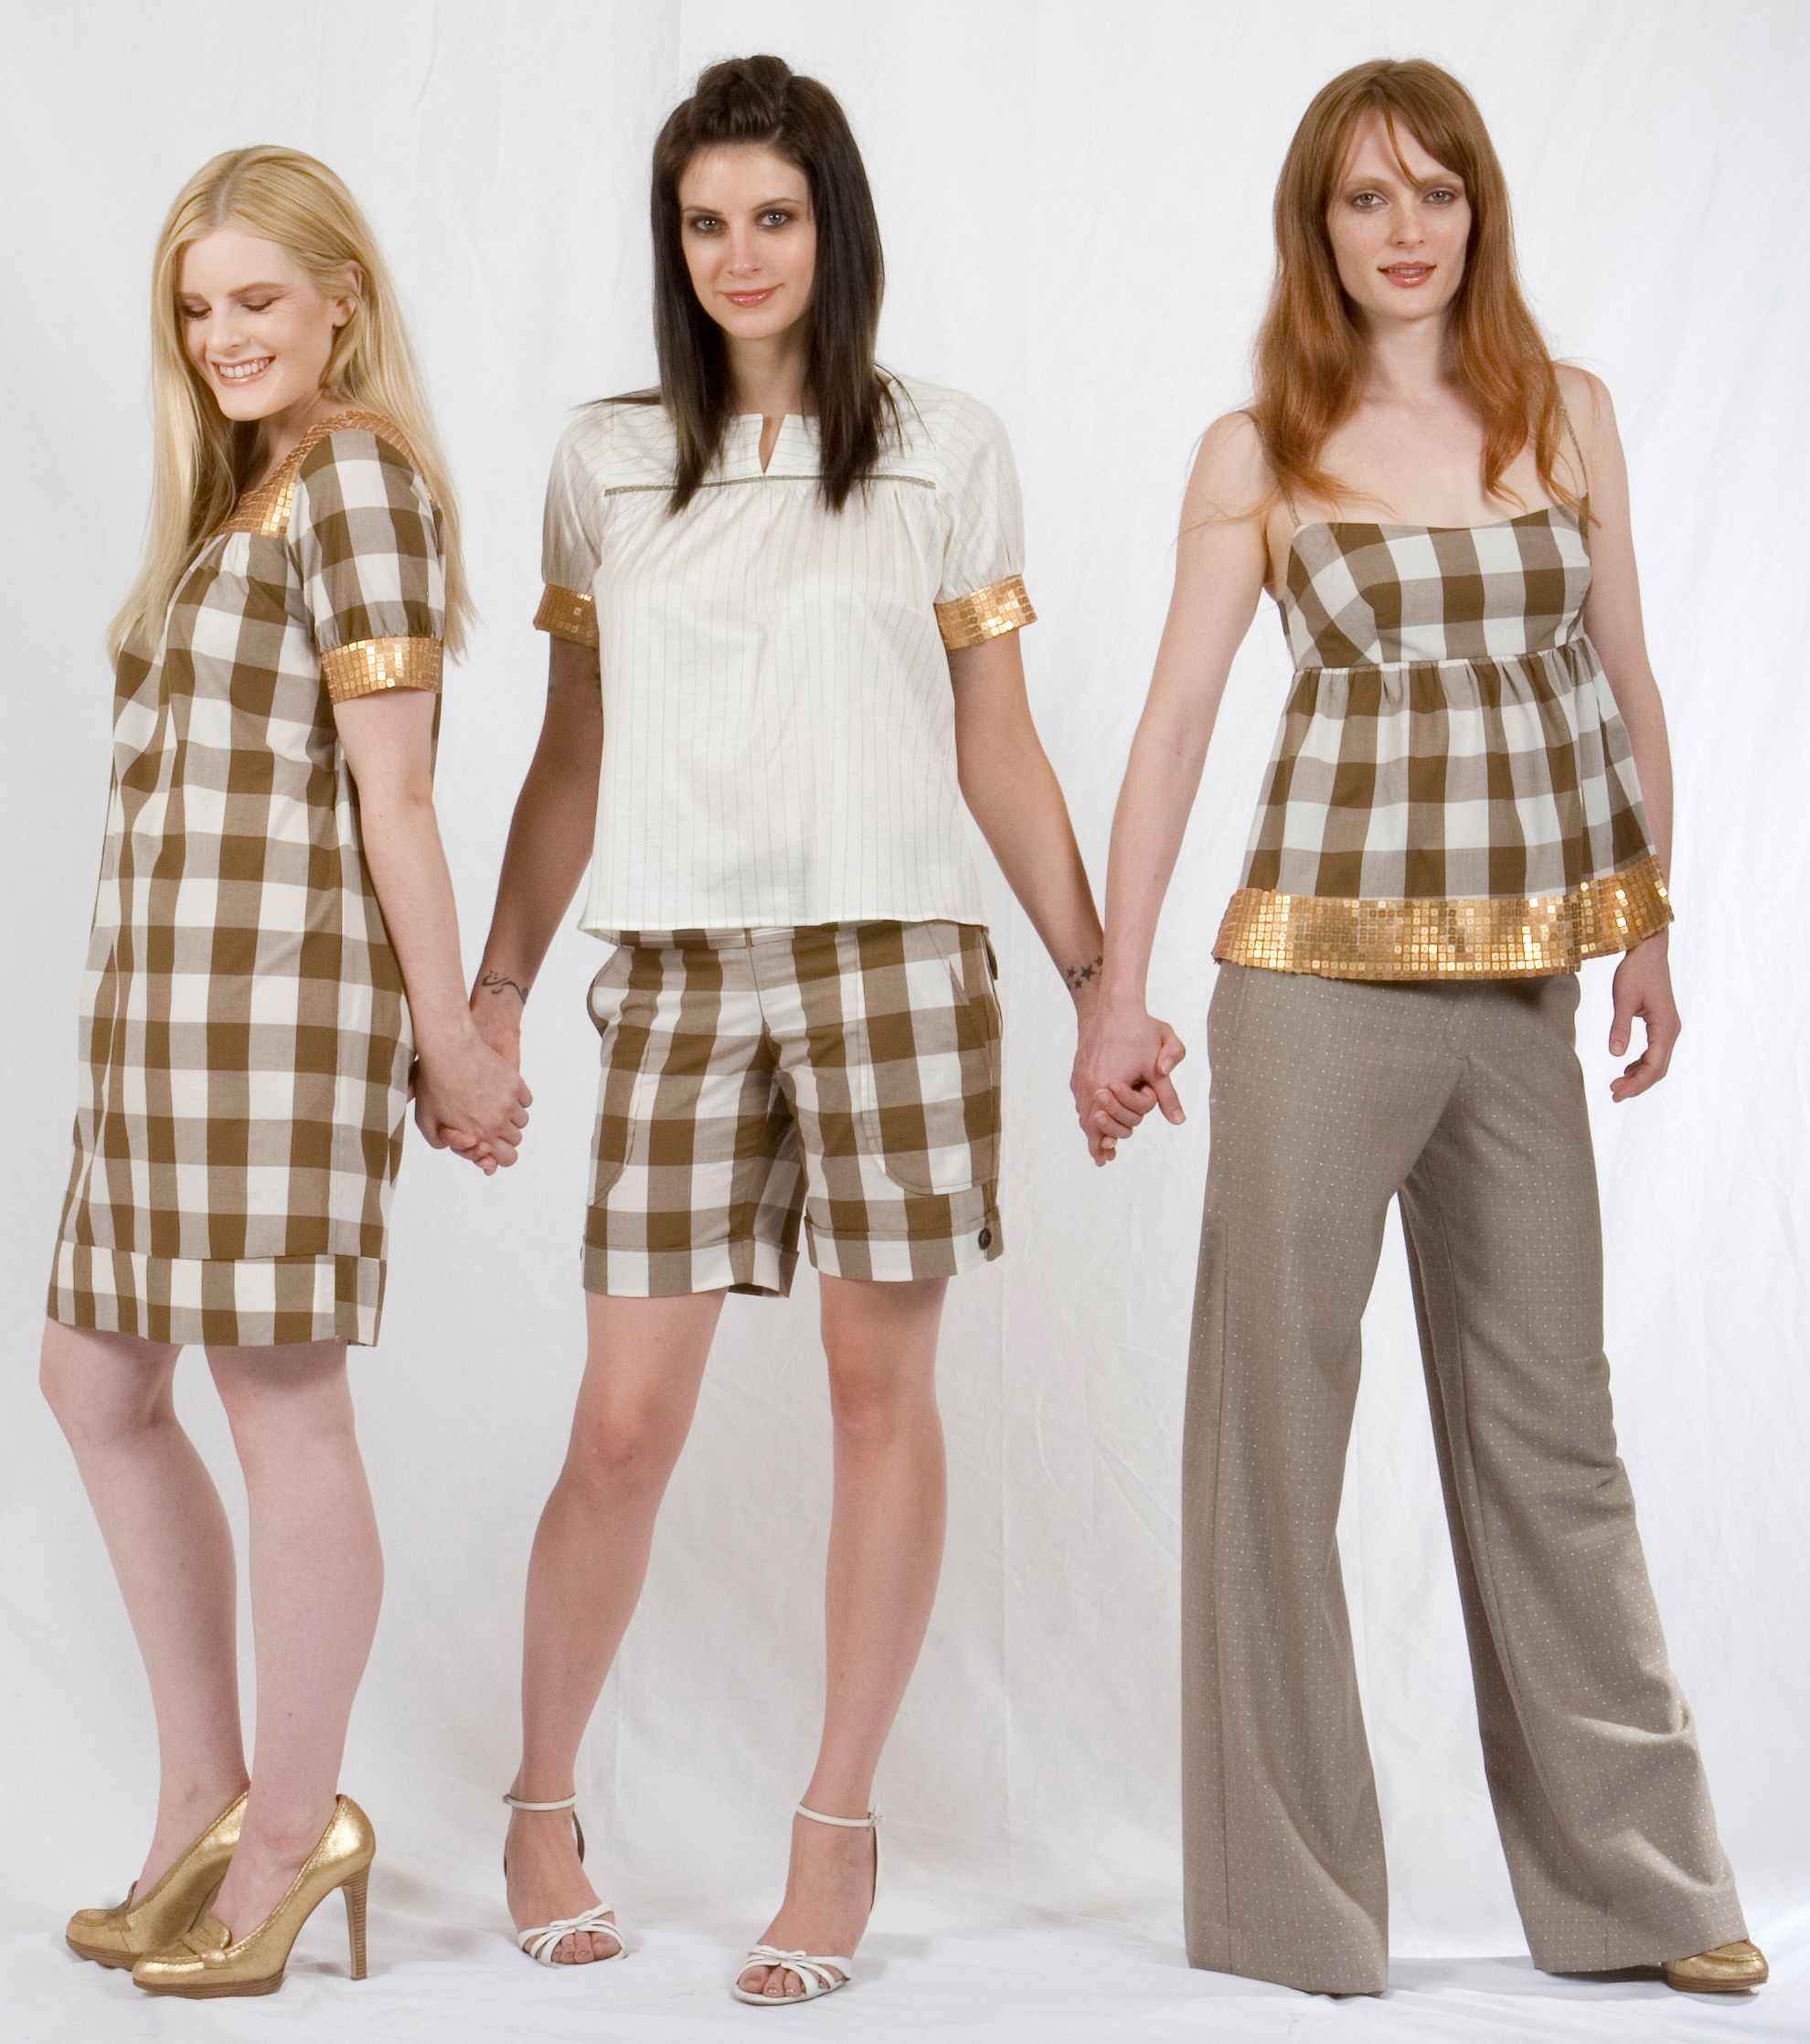 Bib Dress in Cotton Gingham w/ Gold Sequined Yoke & Sleeve Bands.  Edie Top in Ecru Jersey w/ Gold Sequined Sleeve Bands & Metallic Trim.  Cuffed Shorts in Cotton Gingham           Shirred Cami Top in Cotton Gingham w/ Gold Sequined Hem & Metallic Trim.  Boy Trouser in Dotted Jaquard (Wool / Viscose Stitching)